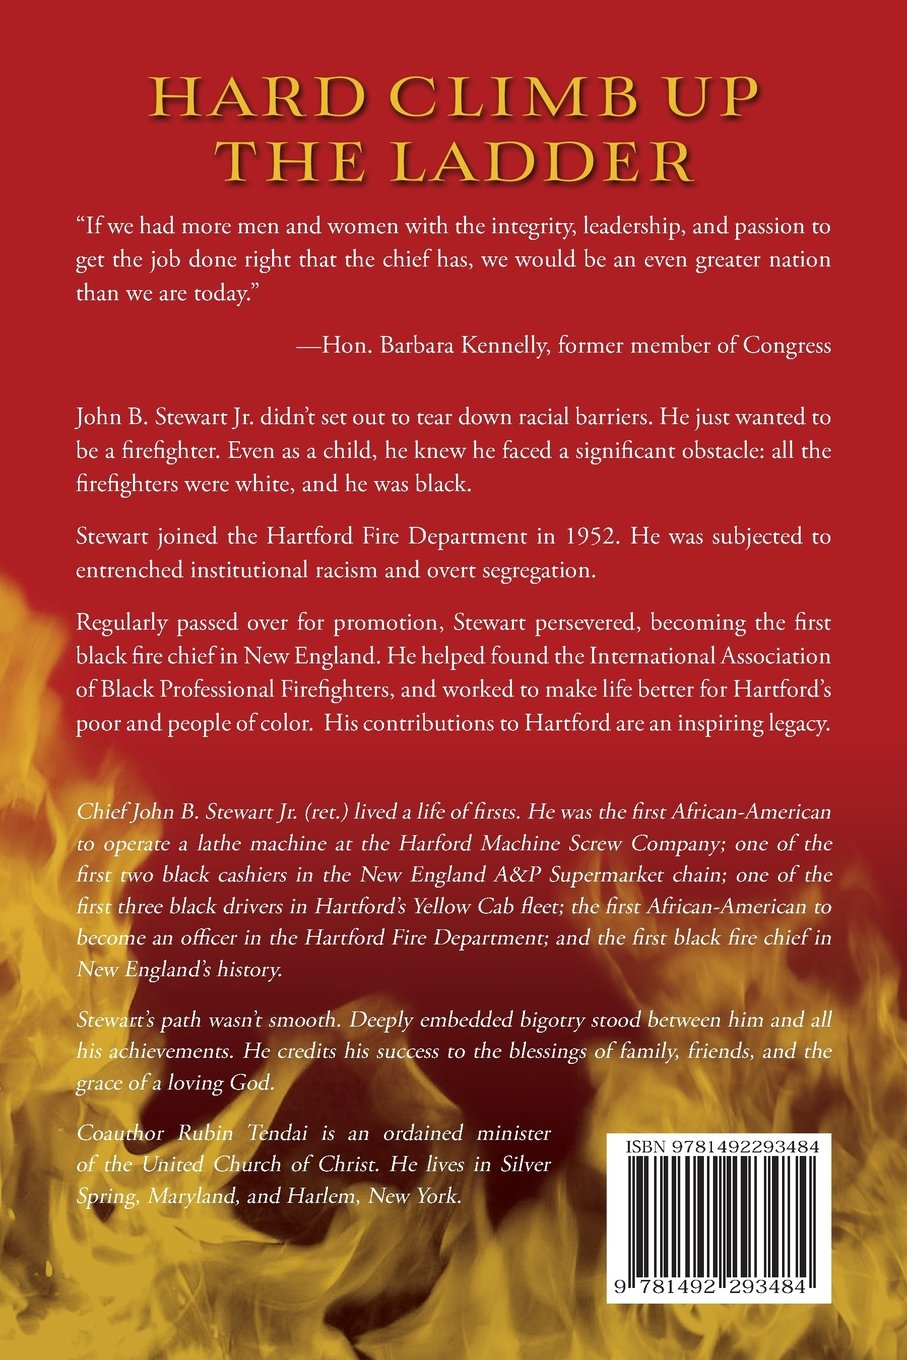 Hard Climb Up The Ladder: The Story Of The First Black Fire Chief Of A  Major New England City: Rubin Tendai: 9781492293484: Amazon: Books